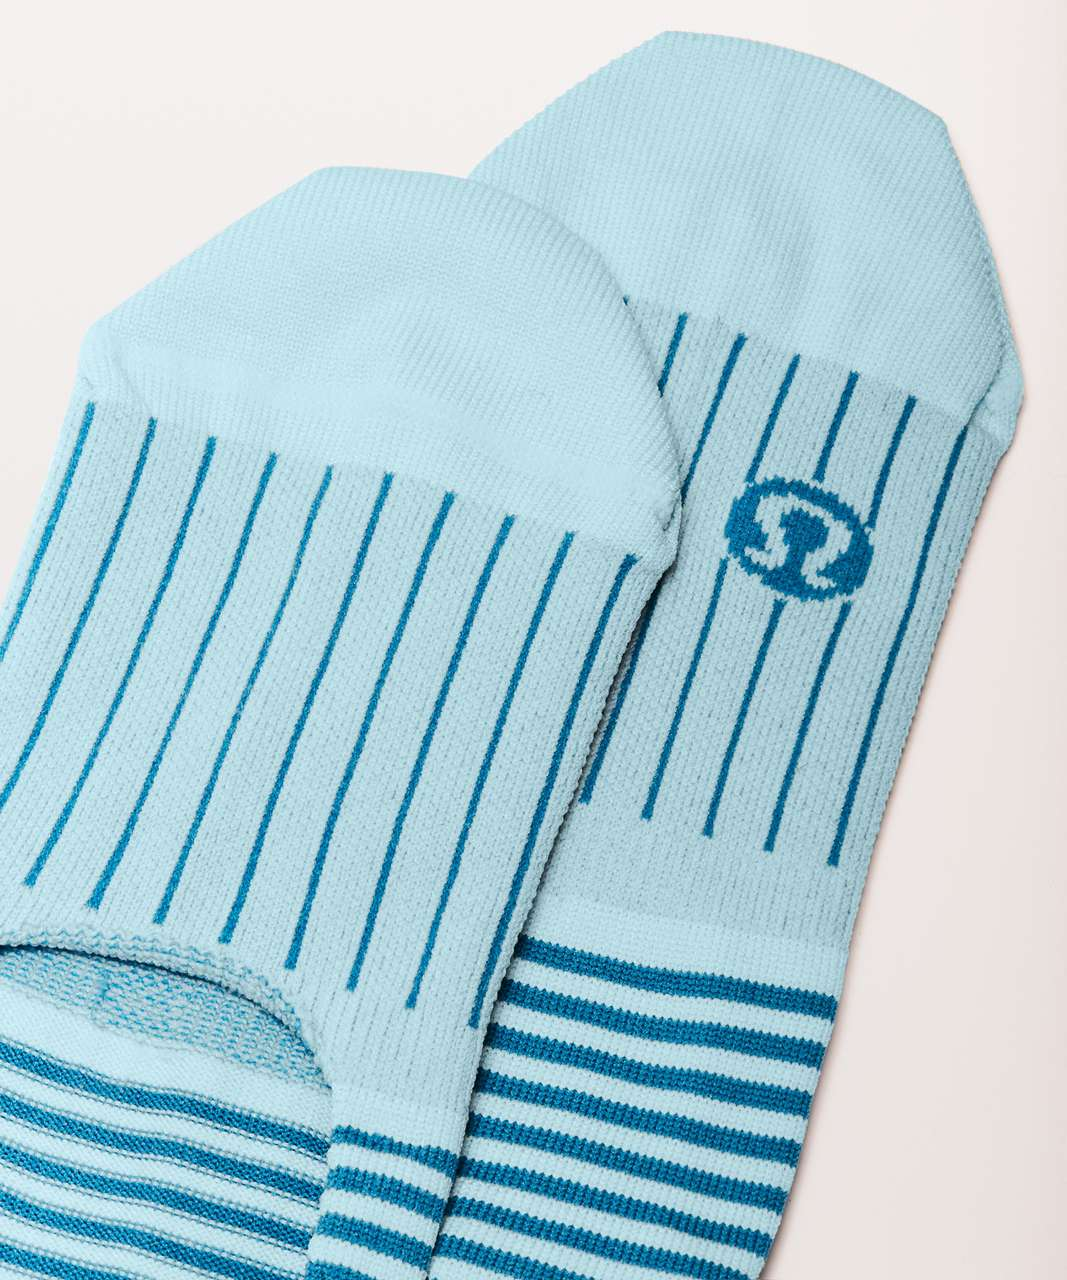 Lululemon Secret Sock - Blue Glow / Teal Blue